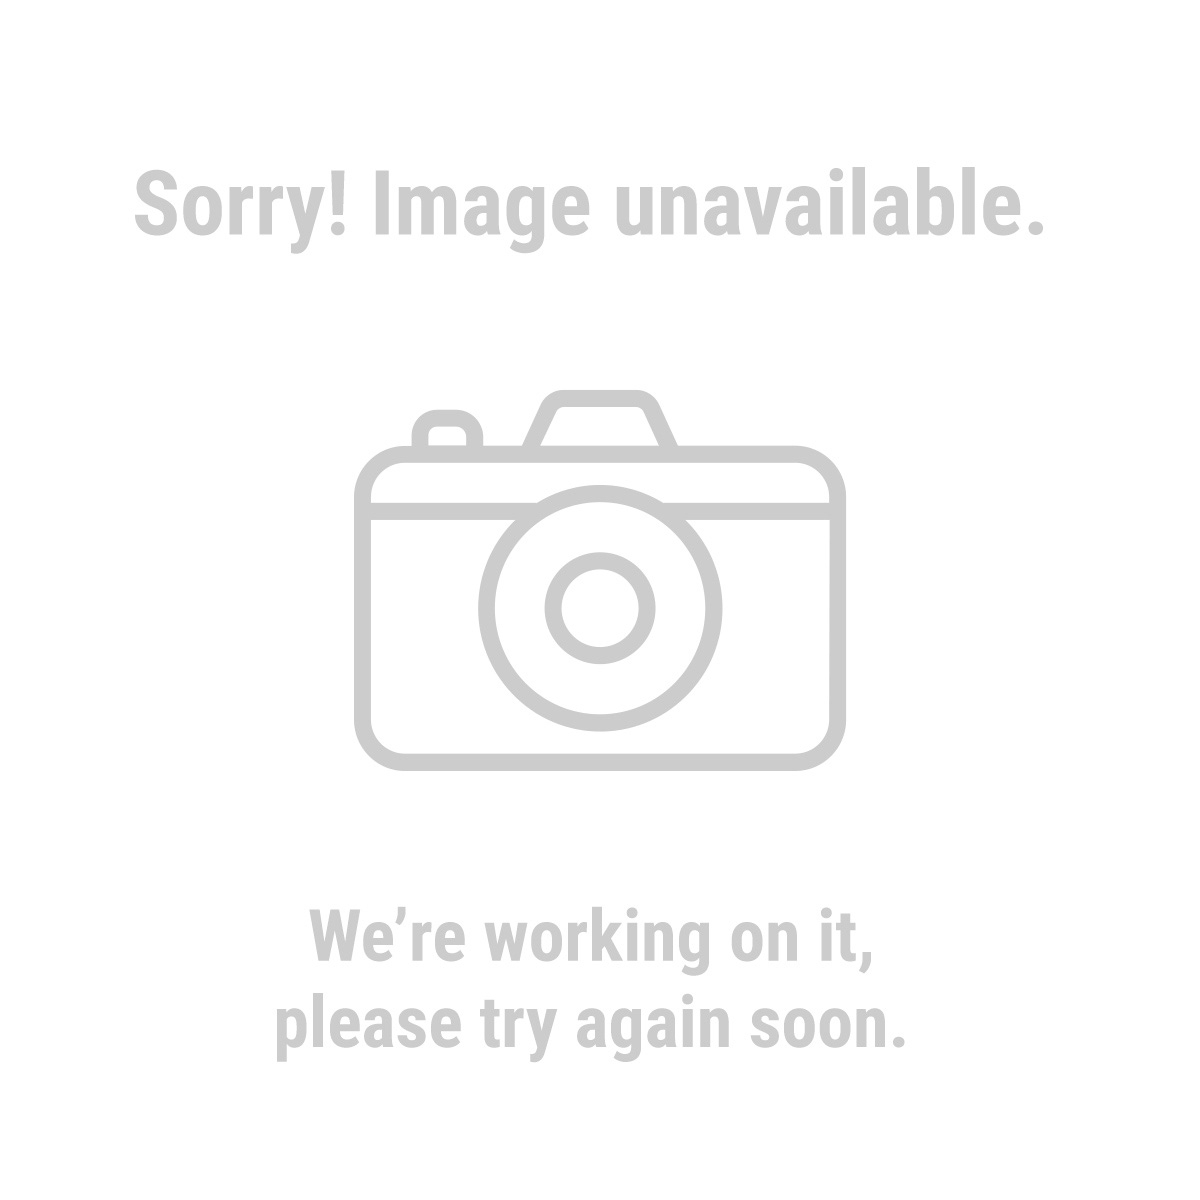 5 Piece Solid Brass Industrial Quick Coupler Set